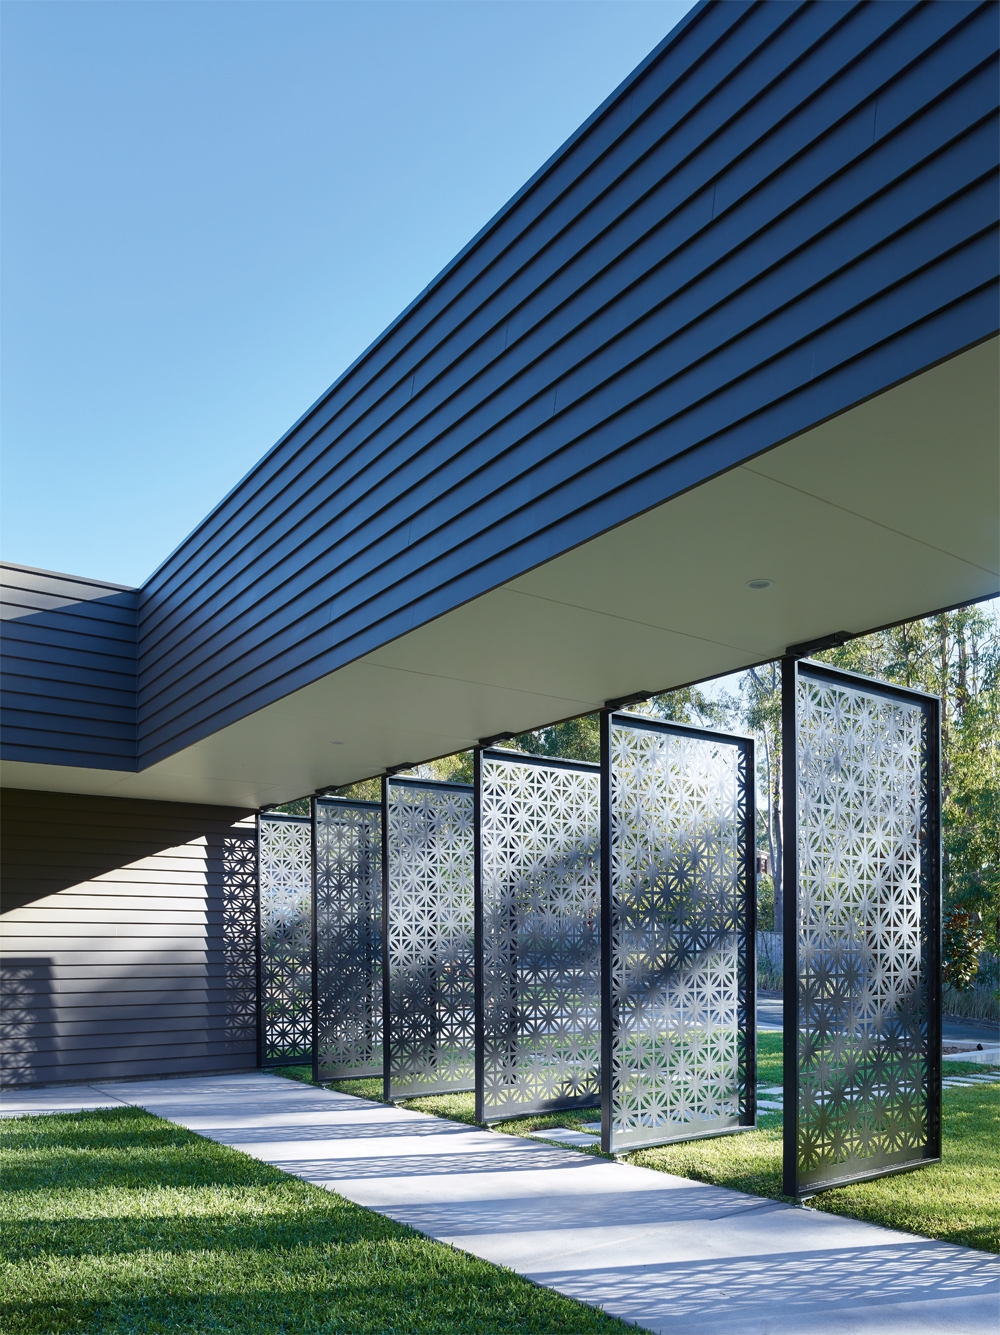 Grand Designs Australia: High Flyer - Architects' masterpiece - exterior: laser cut screens 3